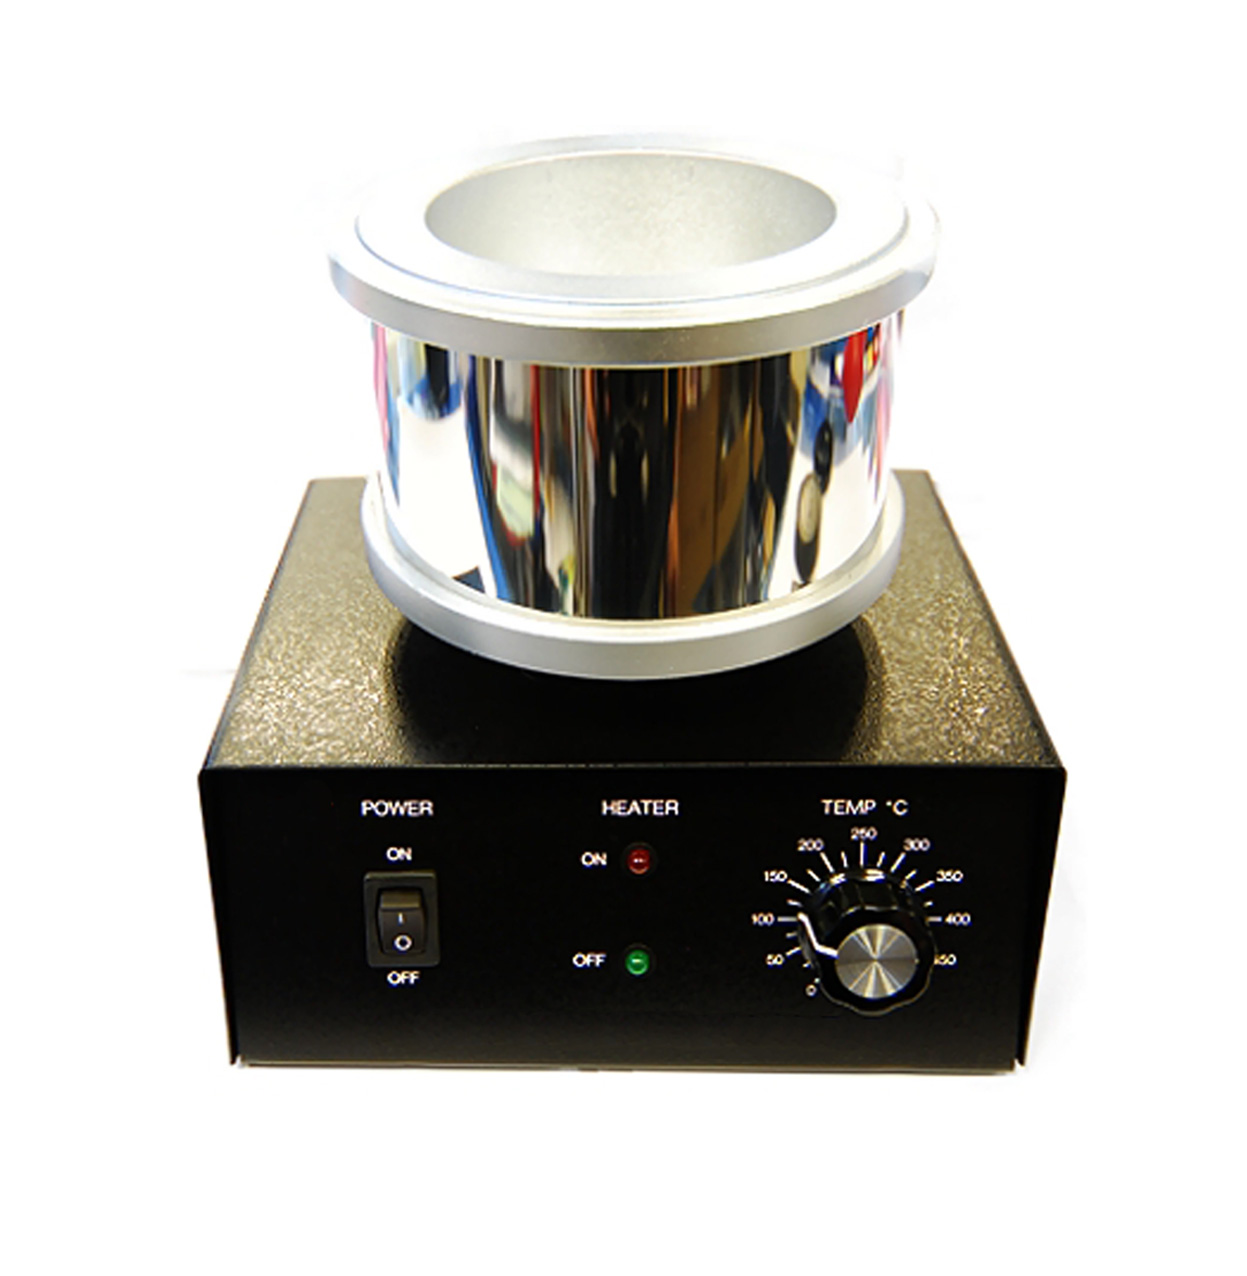 Automatic temperature control wax furnace